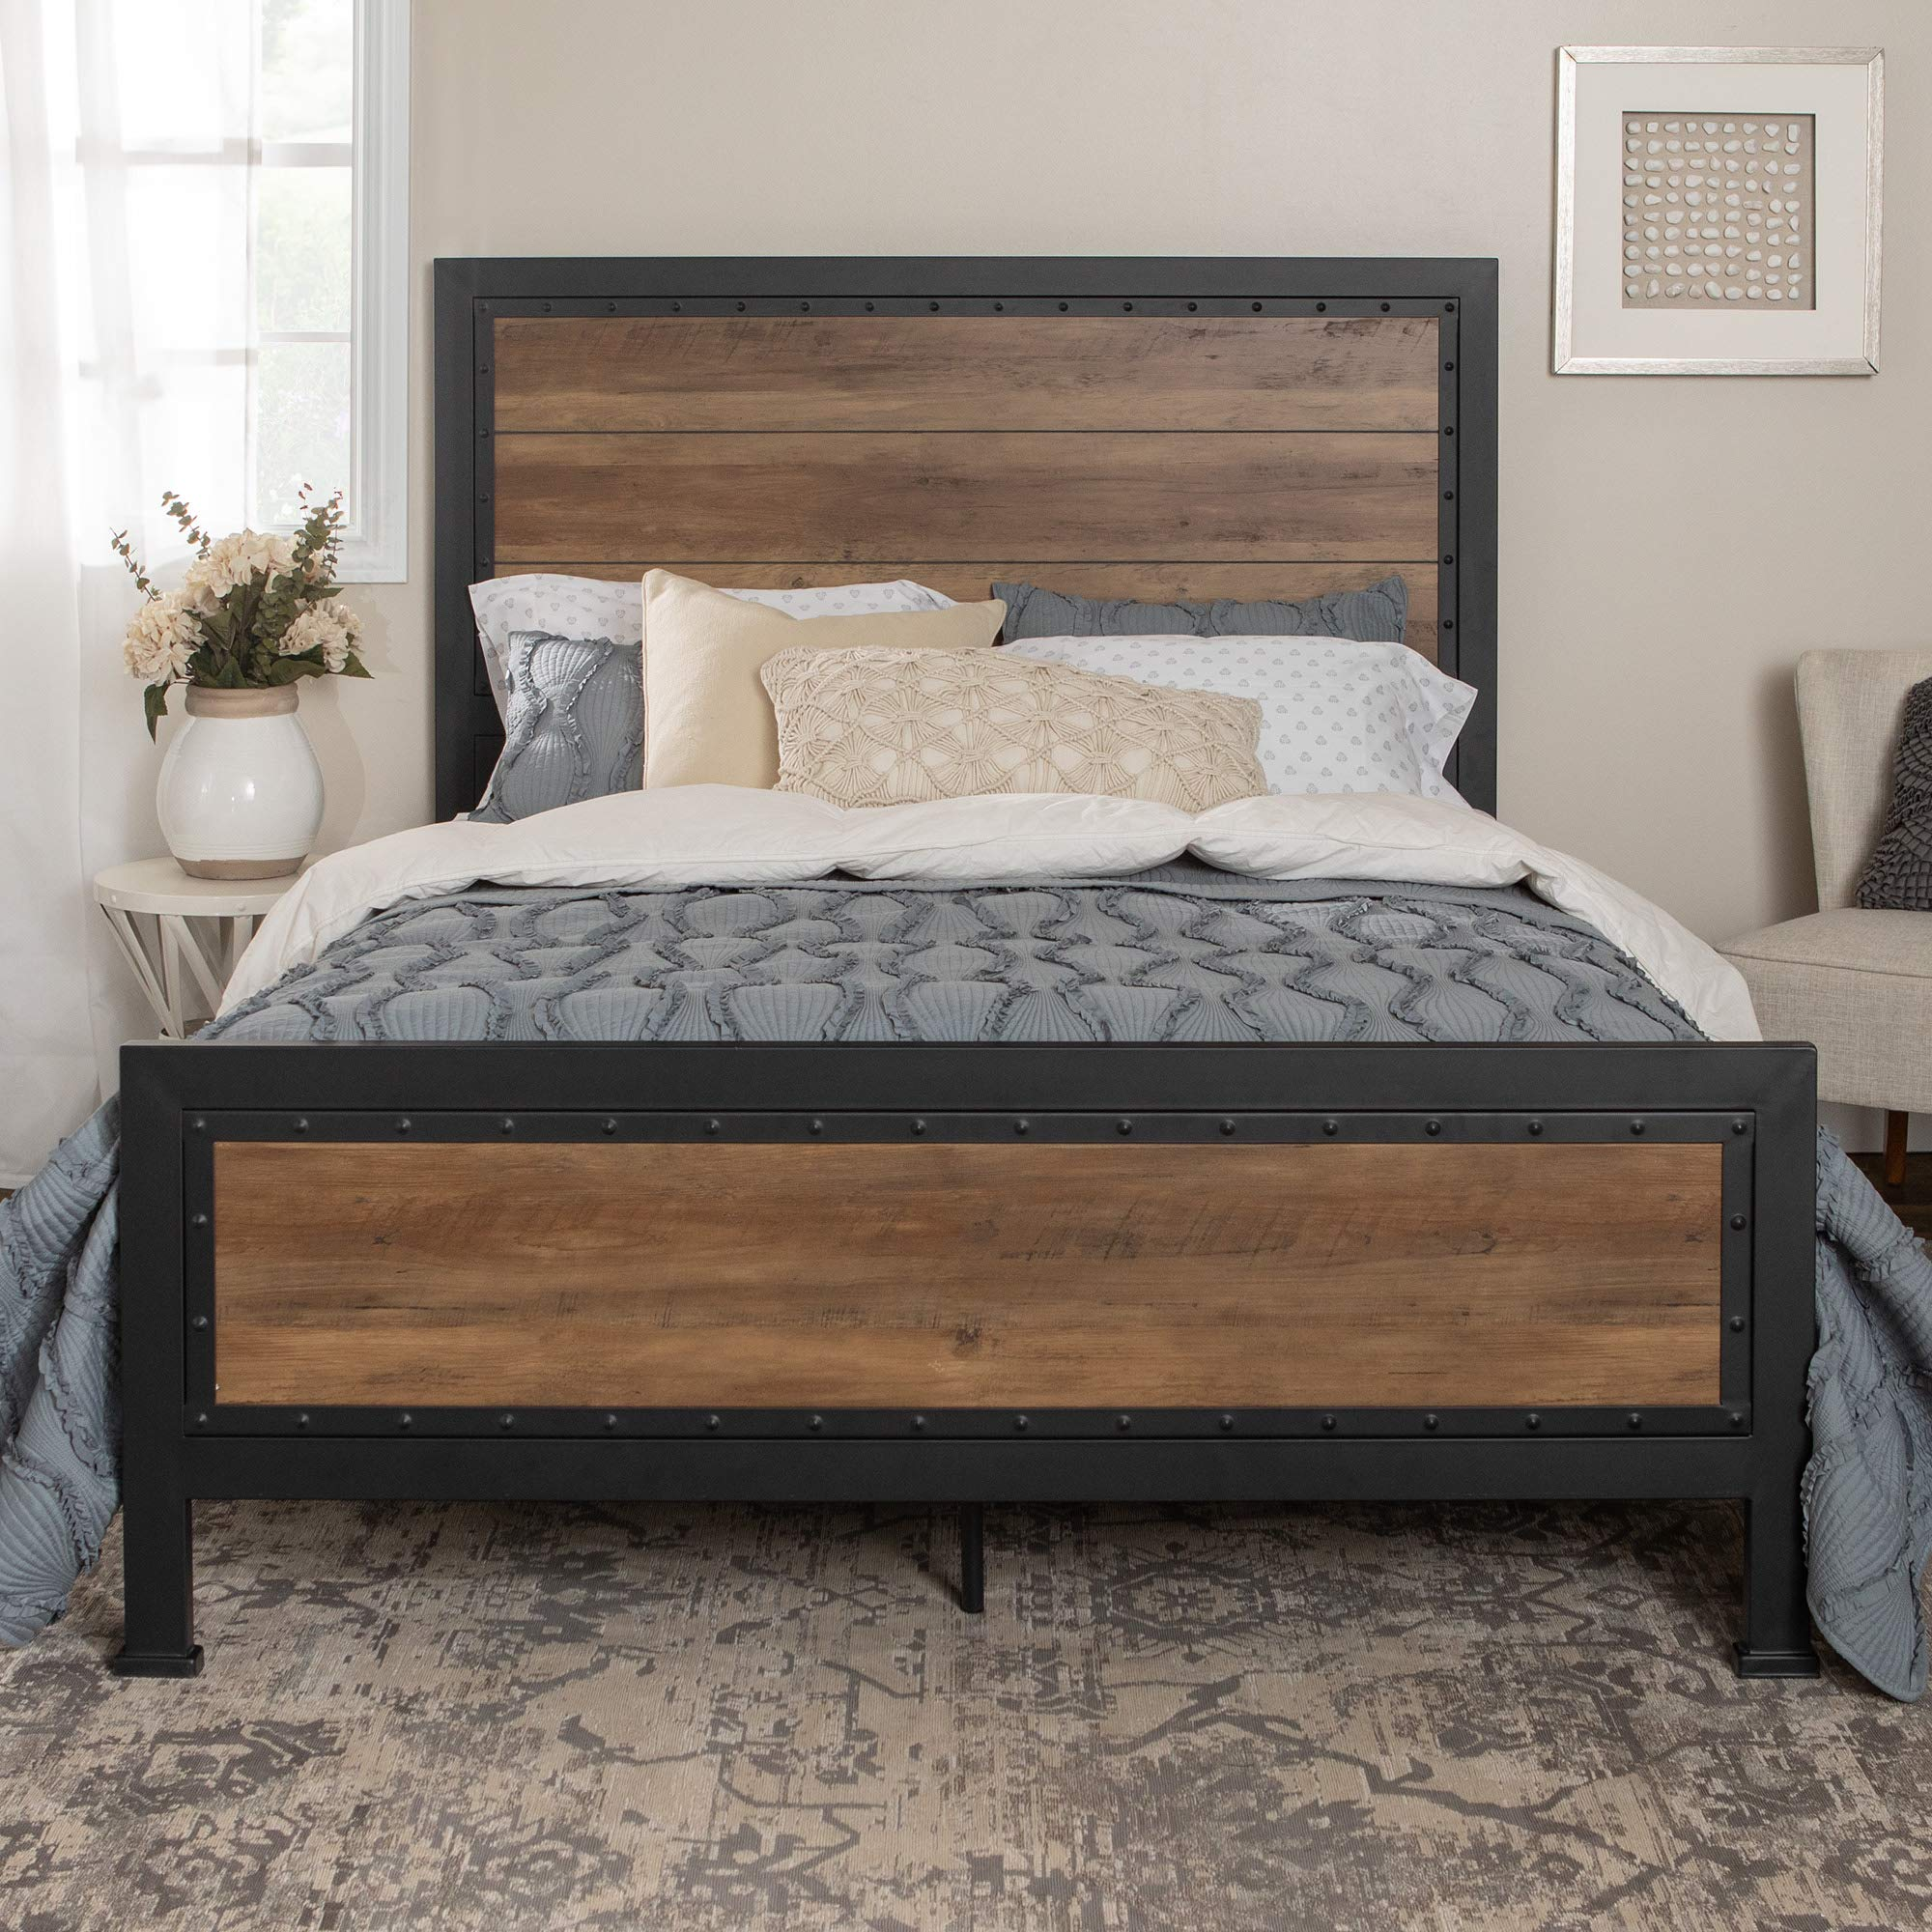 Home Accent Furnishings New Rustic Queen Industrial Wood and Metal Bed - Includes Head and Footboard by Home Accent Furnishings